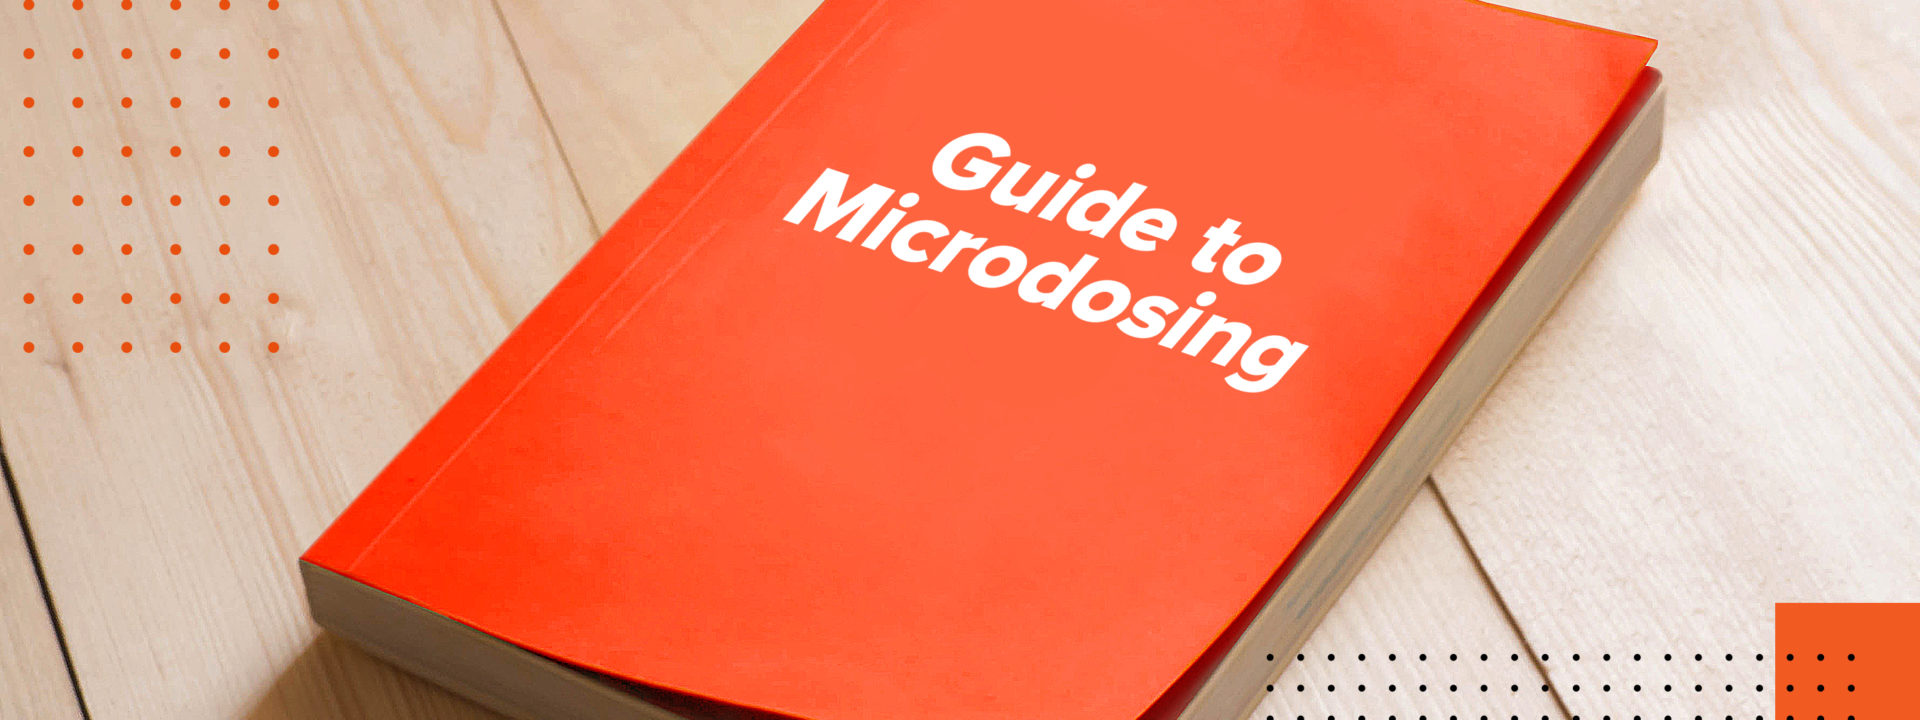 What is Micrdosing and How Do You Do It?